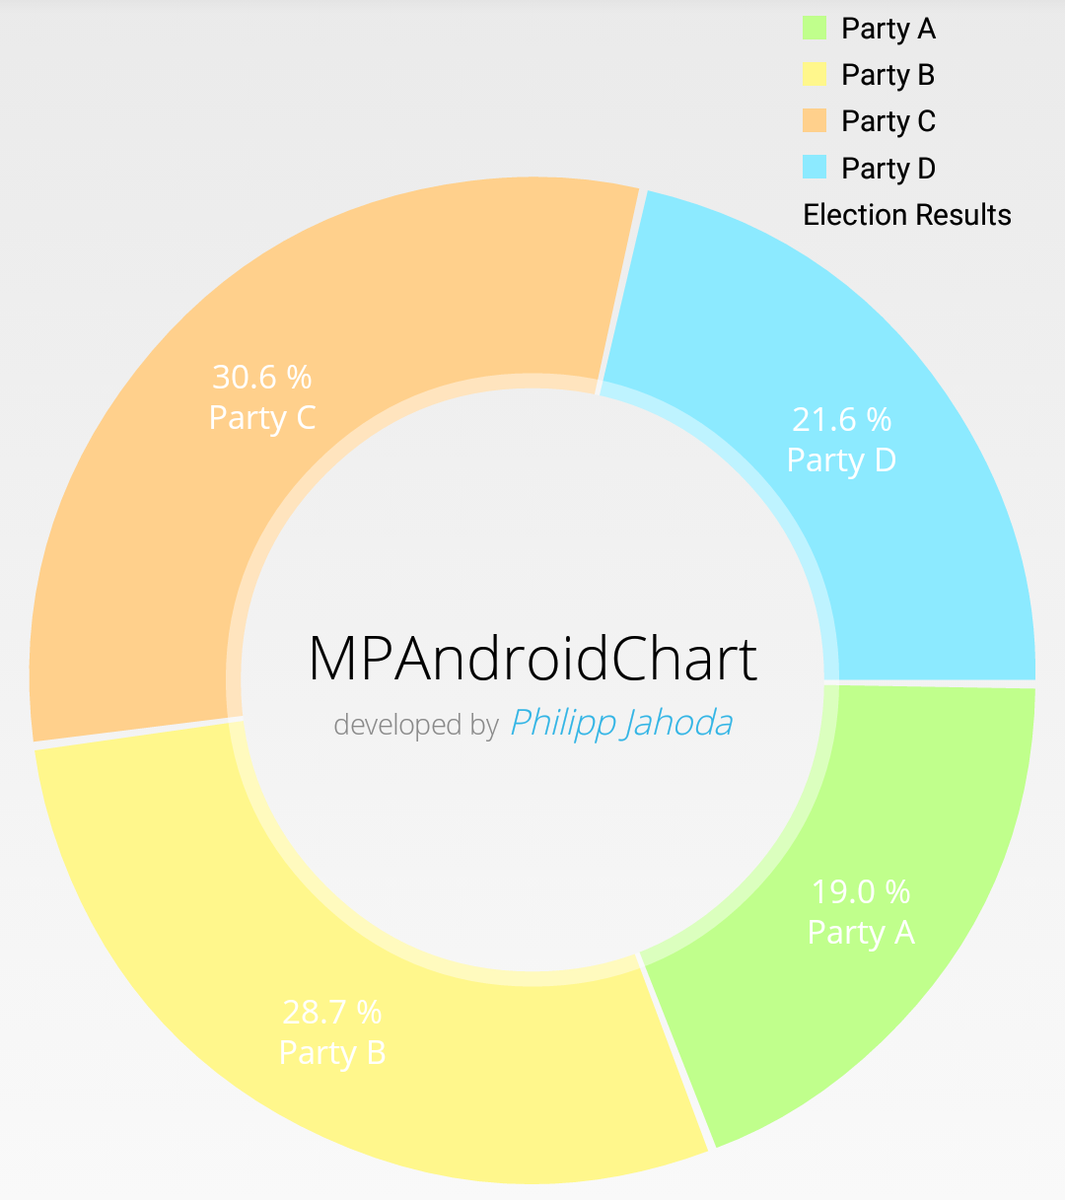 Philipp jahoda on twitter mpandroidchart piechart now supports philipp jahoda on twitter mpandroidchart piechart now supports spannablestring center text for more customization github android library nvjuhfo Images